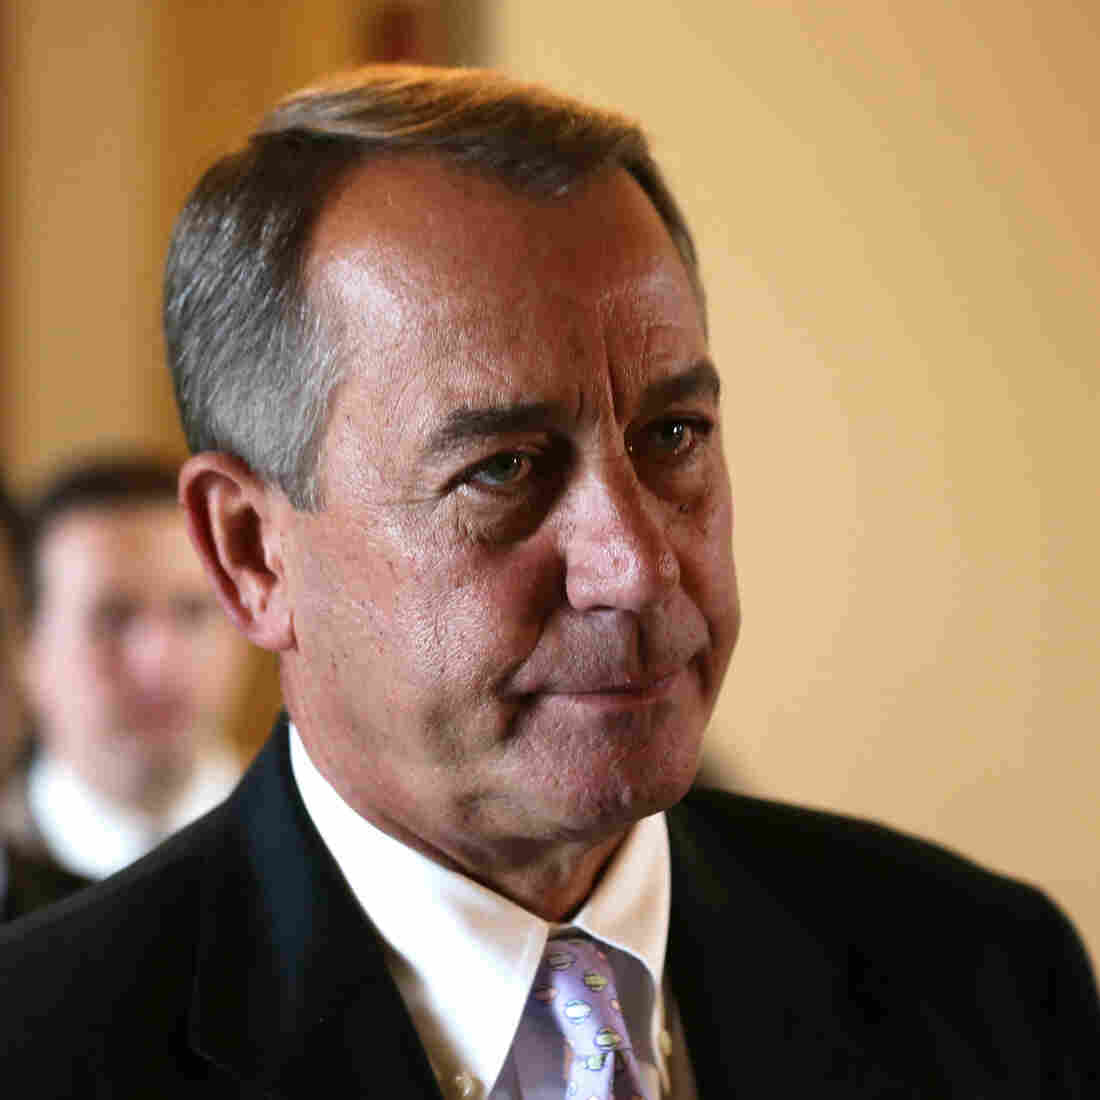 Boehner's Blues: Why Would Anyone Want This Job?